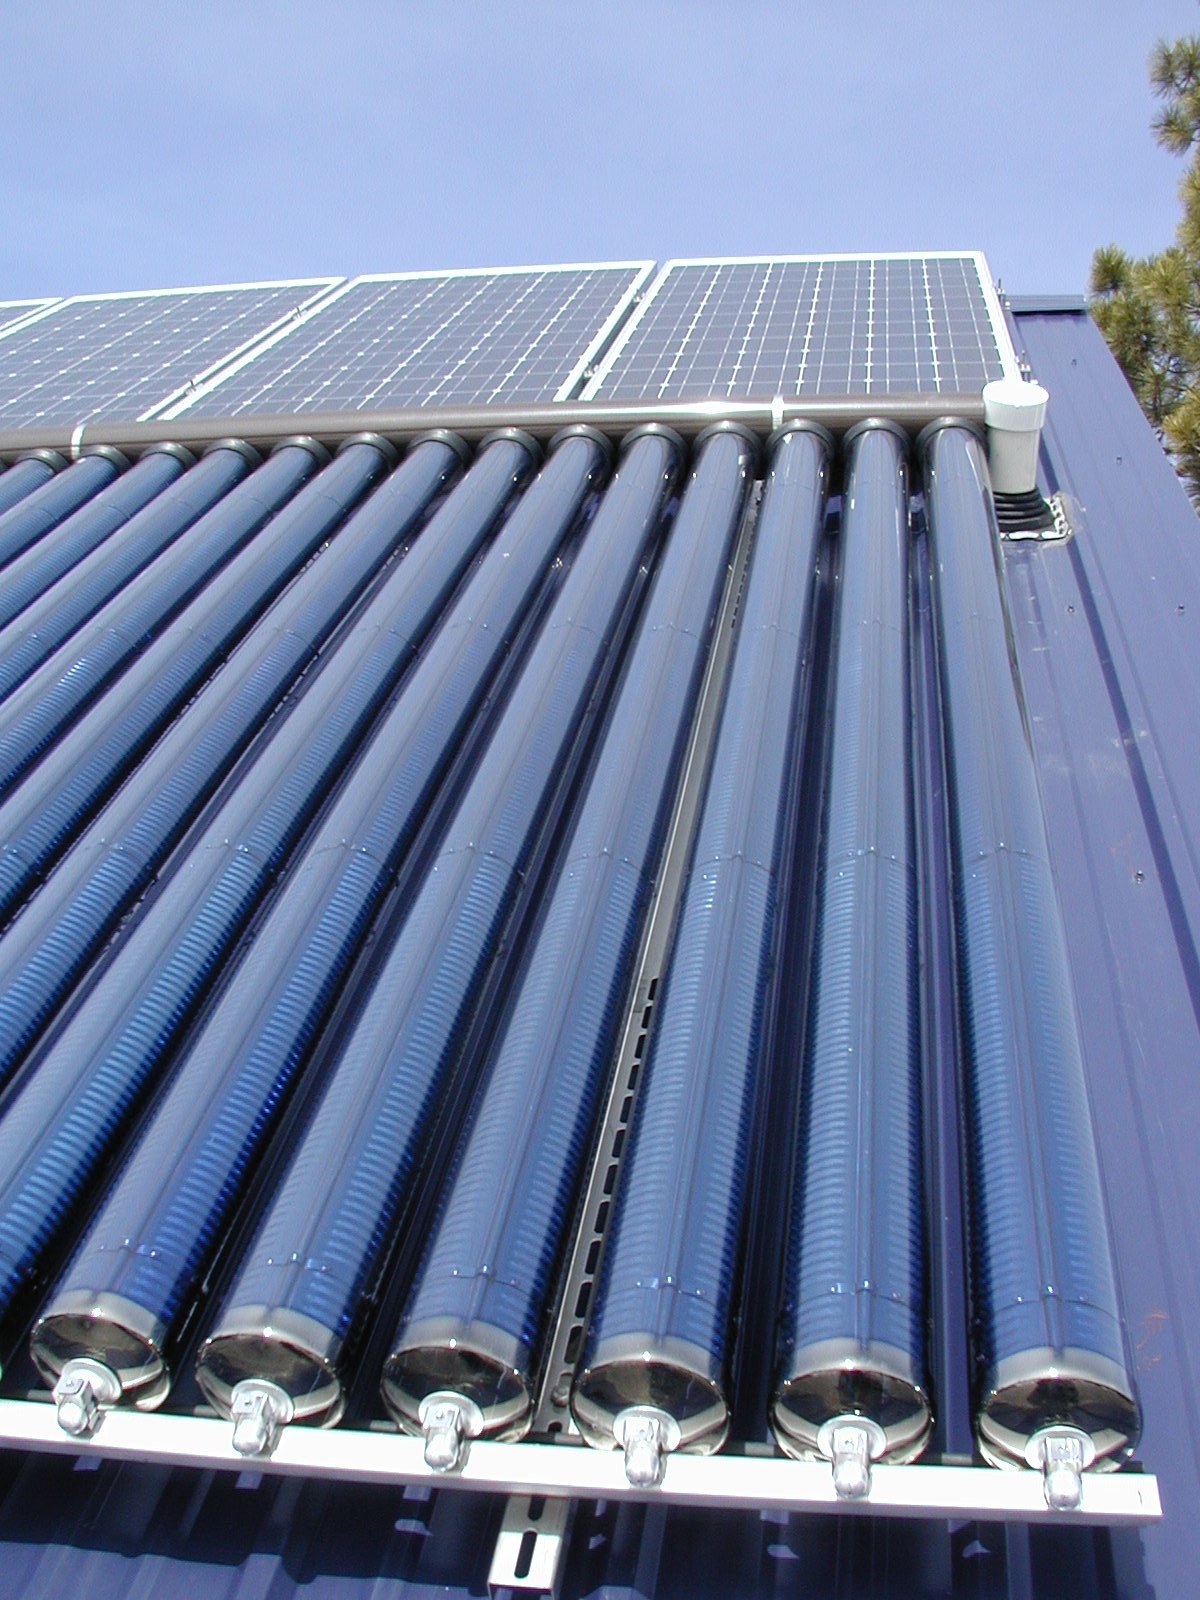 ... Evacuated Tube Solar Collectors | Evacuated Tube Solar Collectors